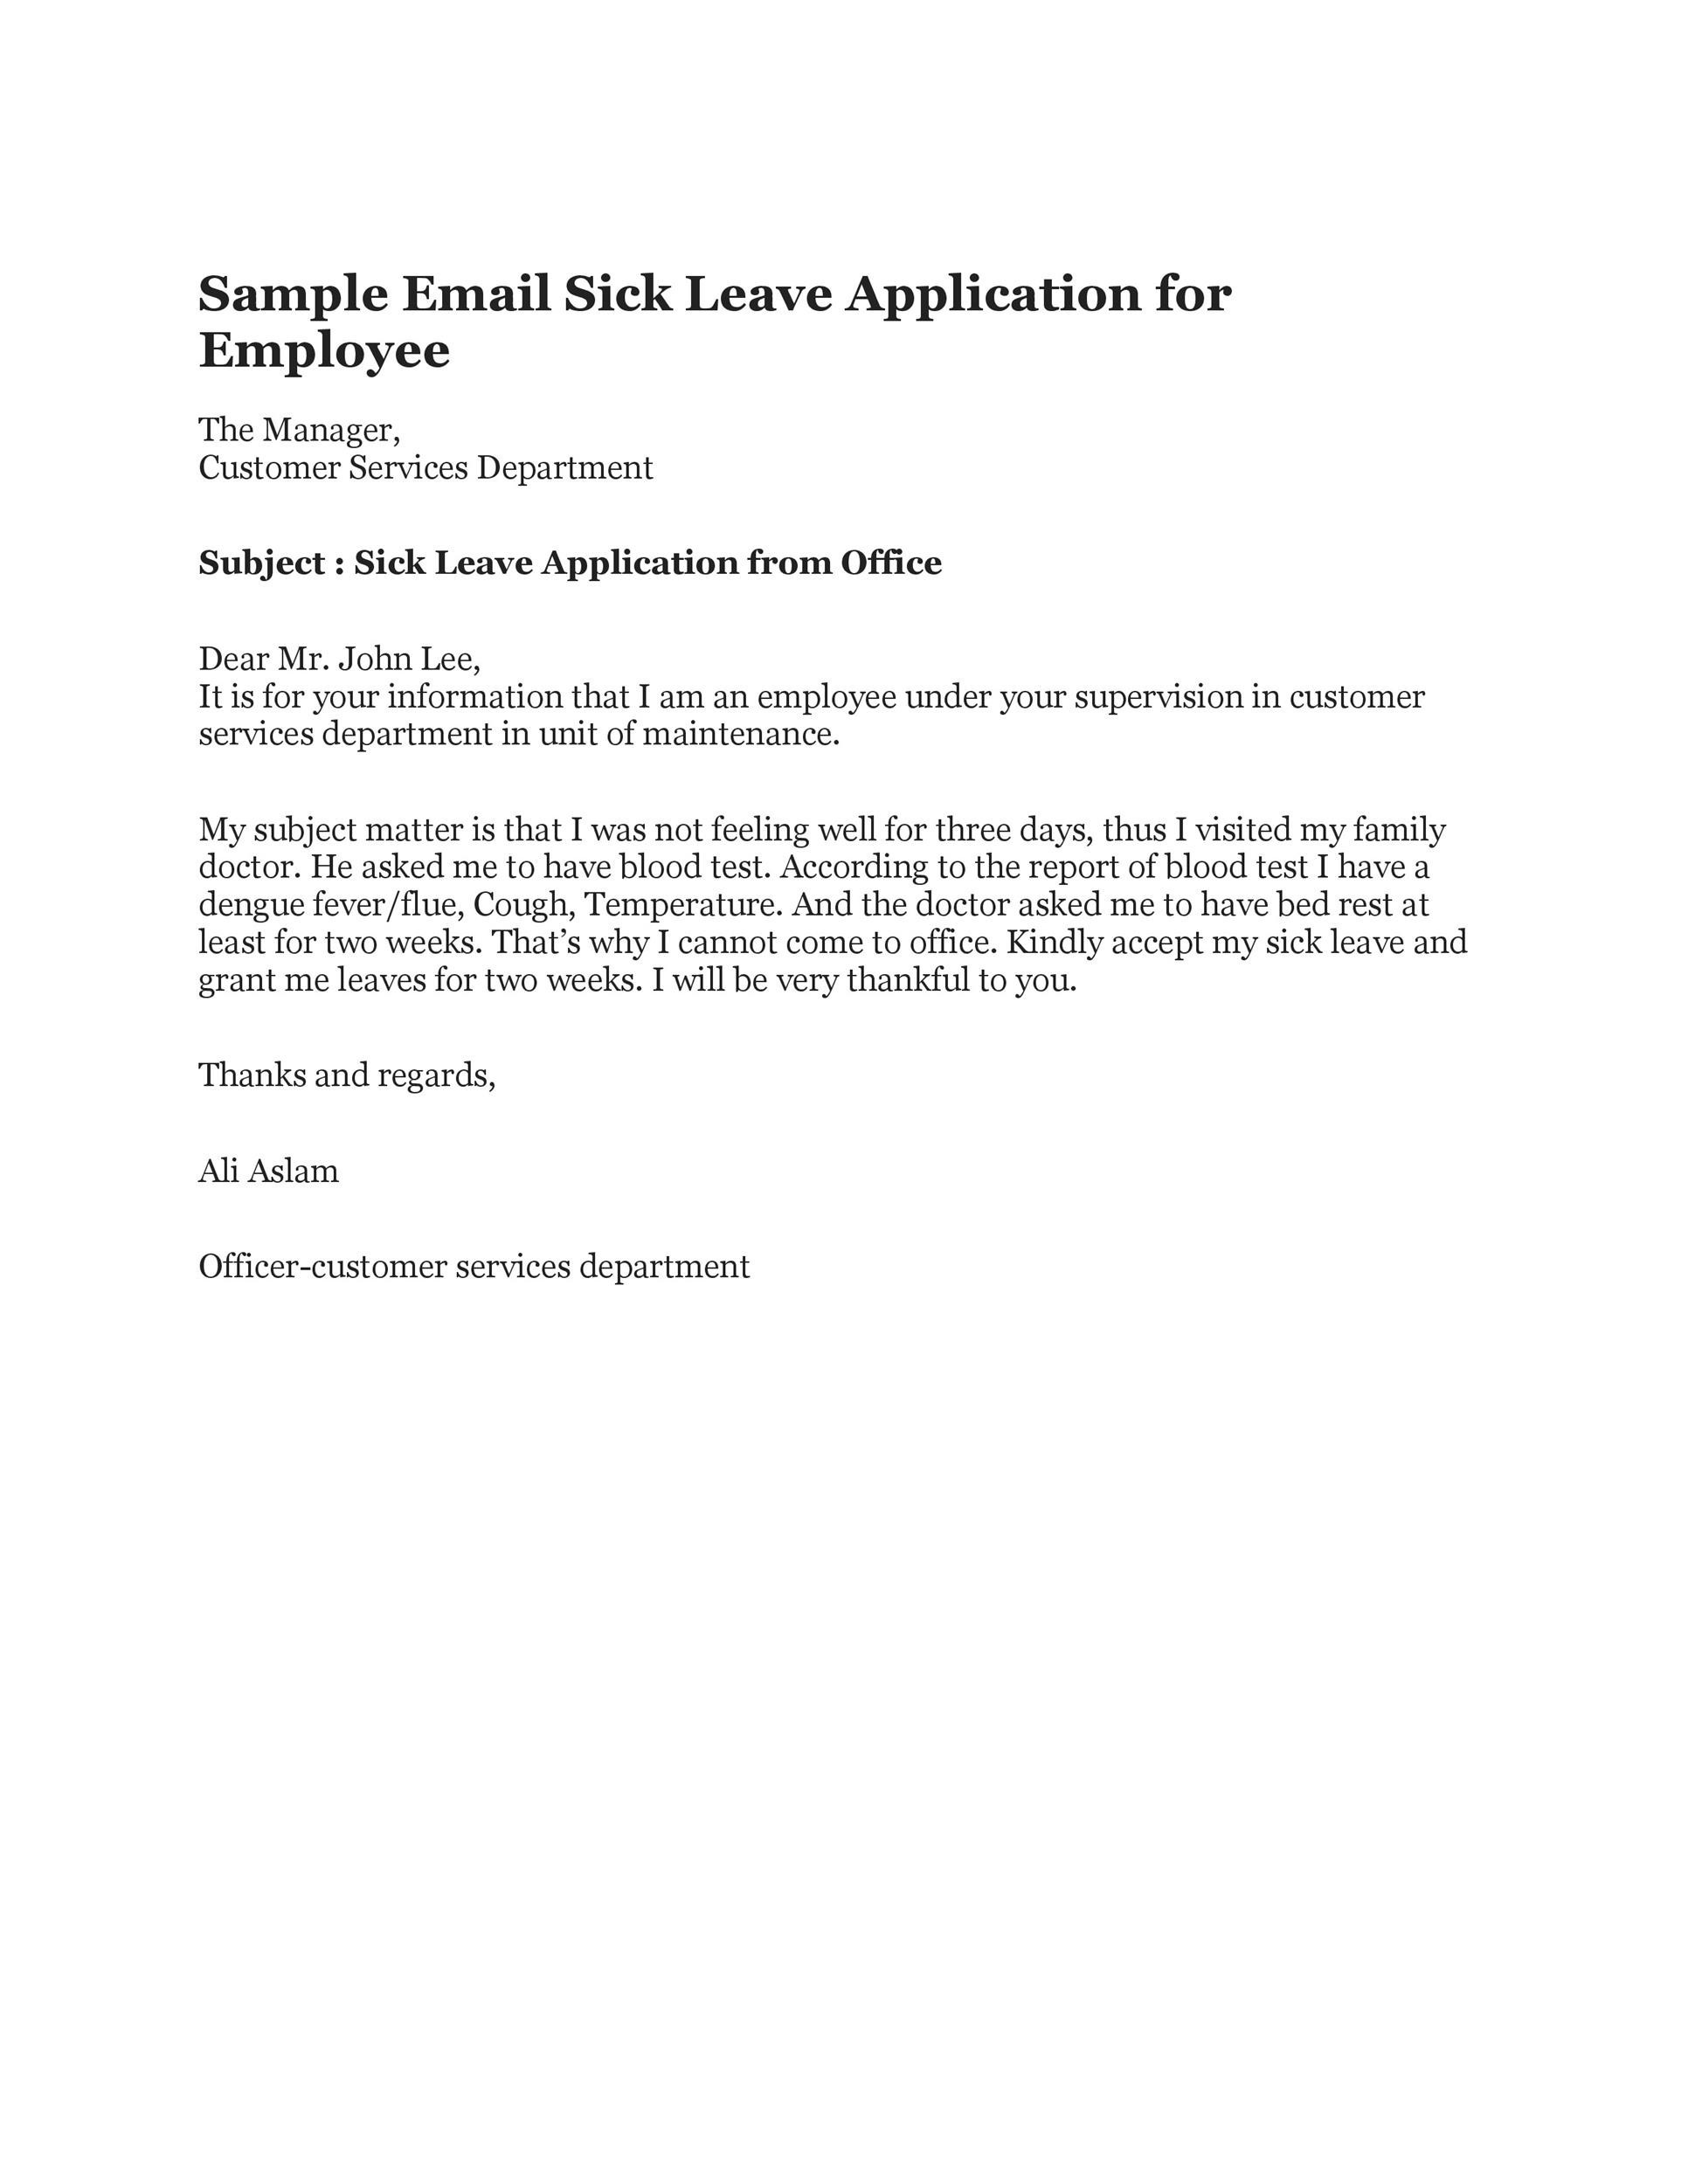 Free sick leave email 32